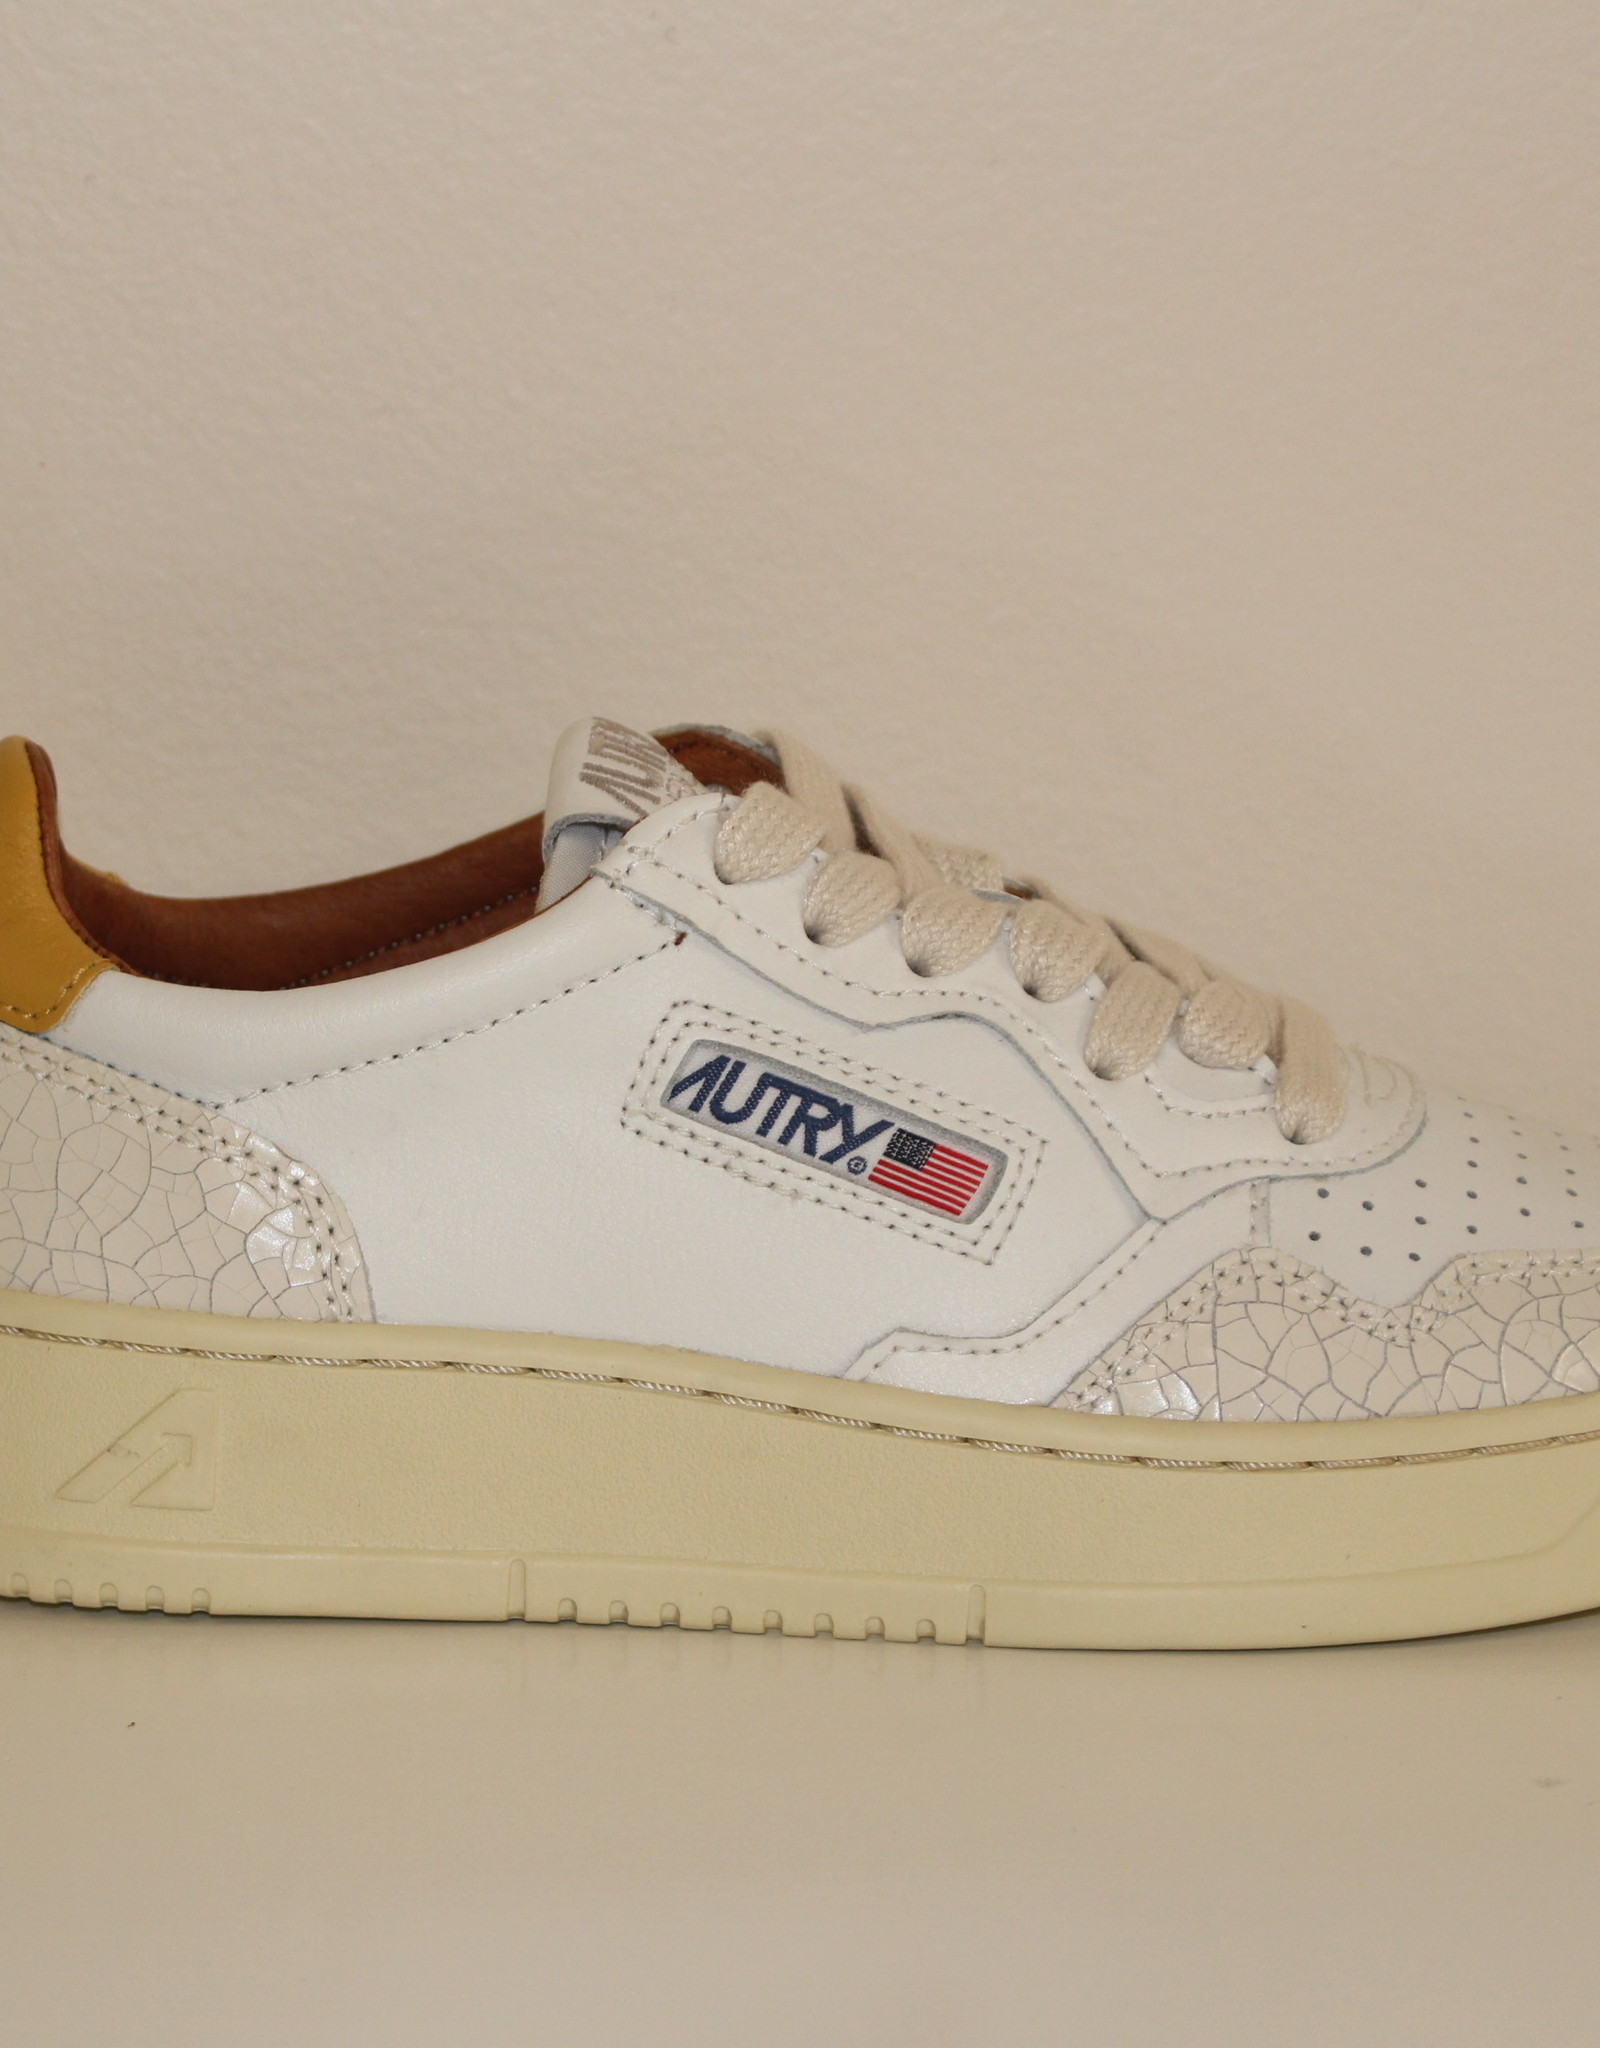 Autry AULWVC leather crack white